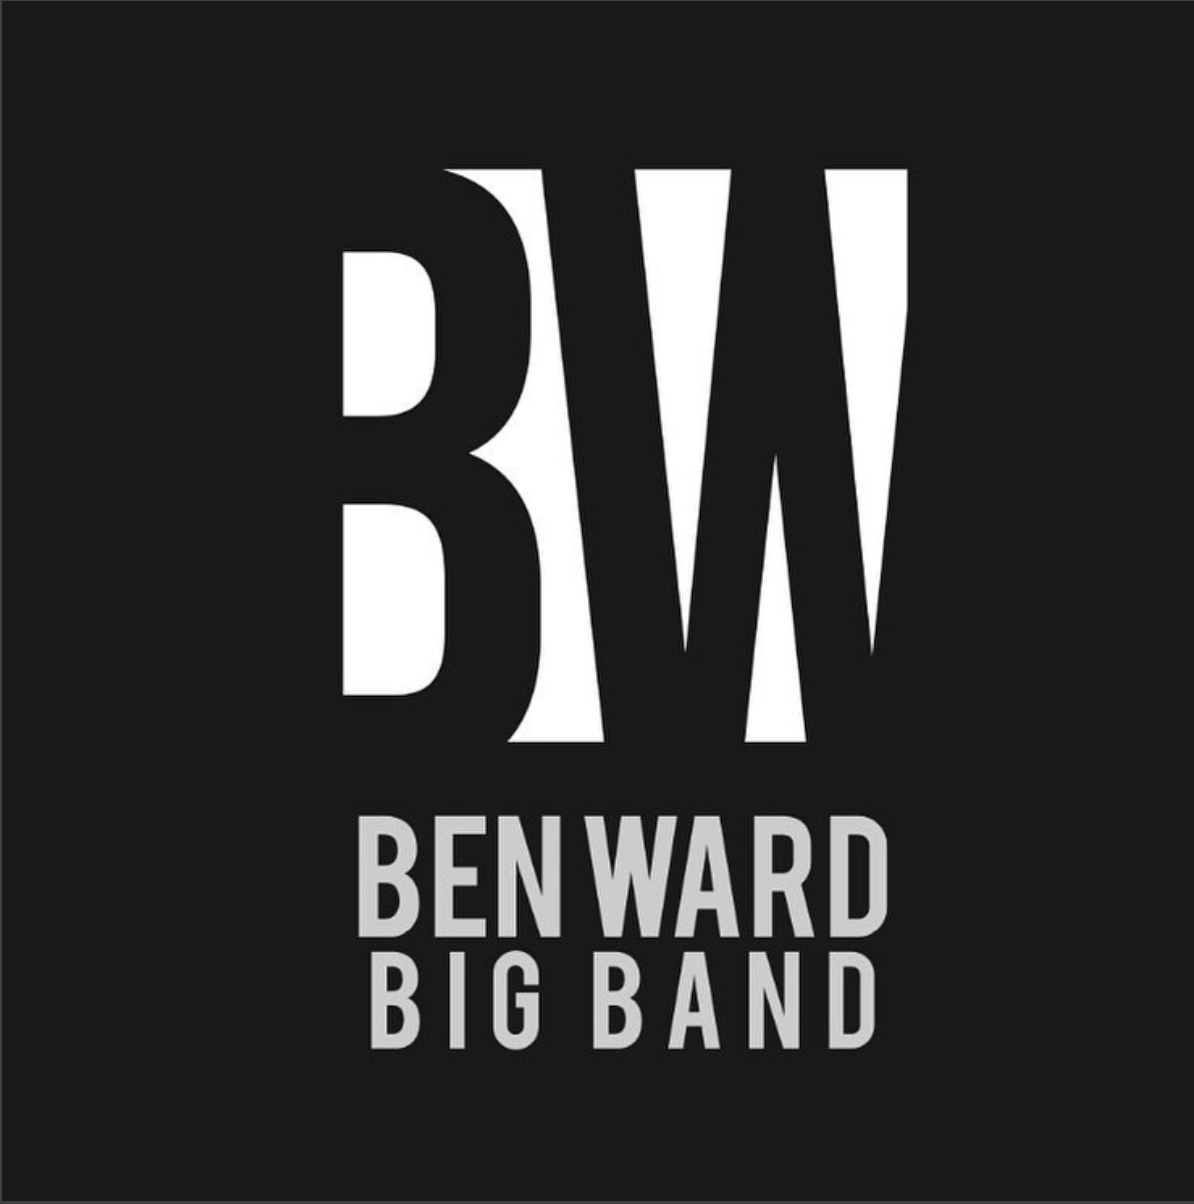 Ben Ward Big Band - Christmas Concert banner image